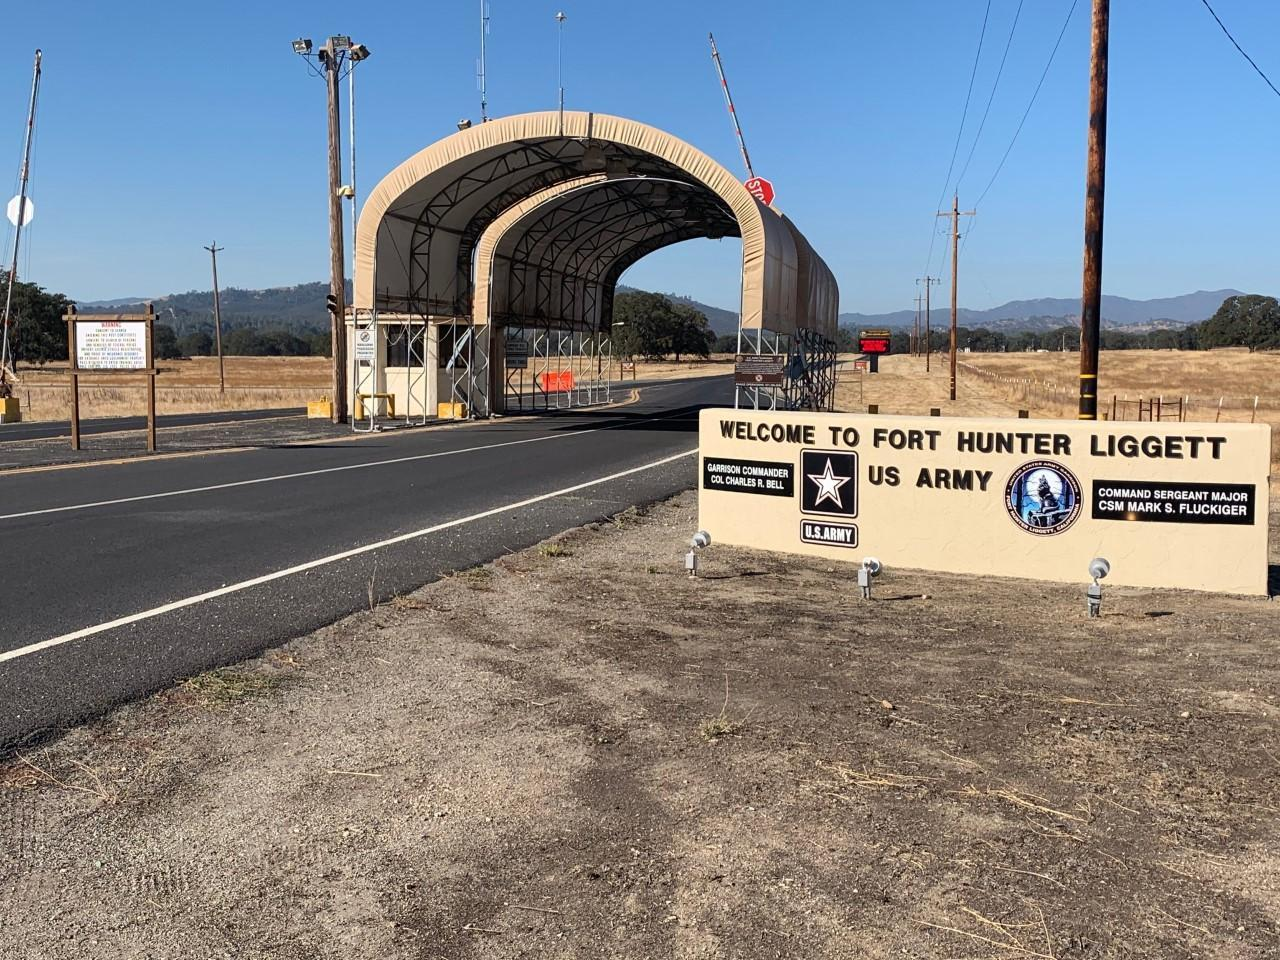 Entrance to military base.